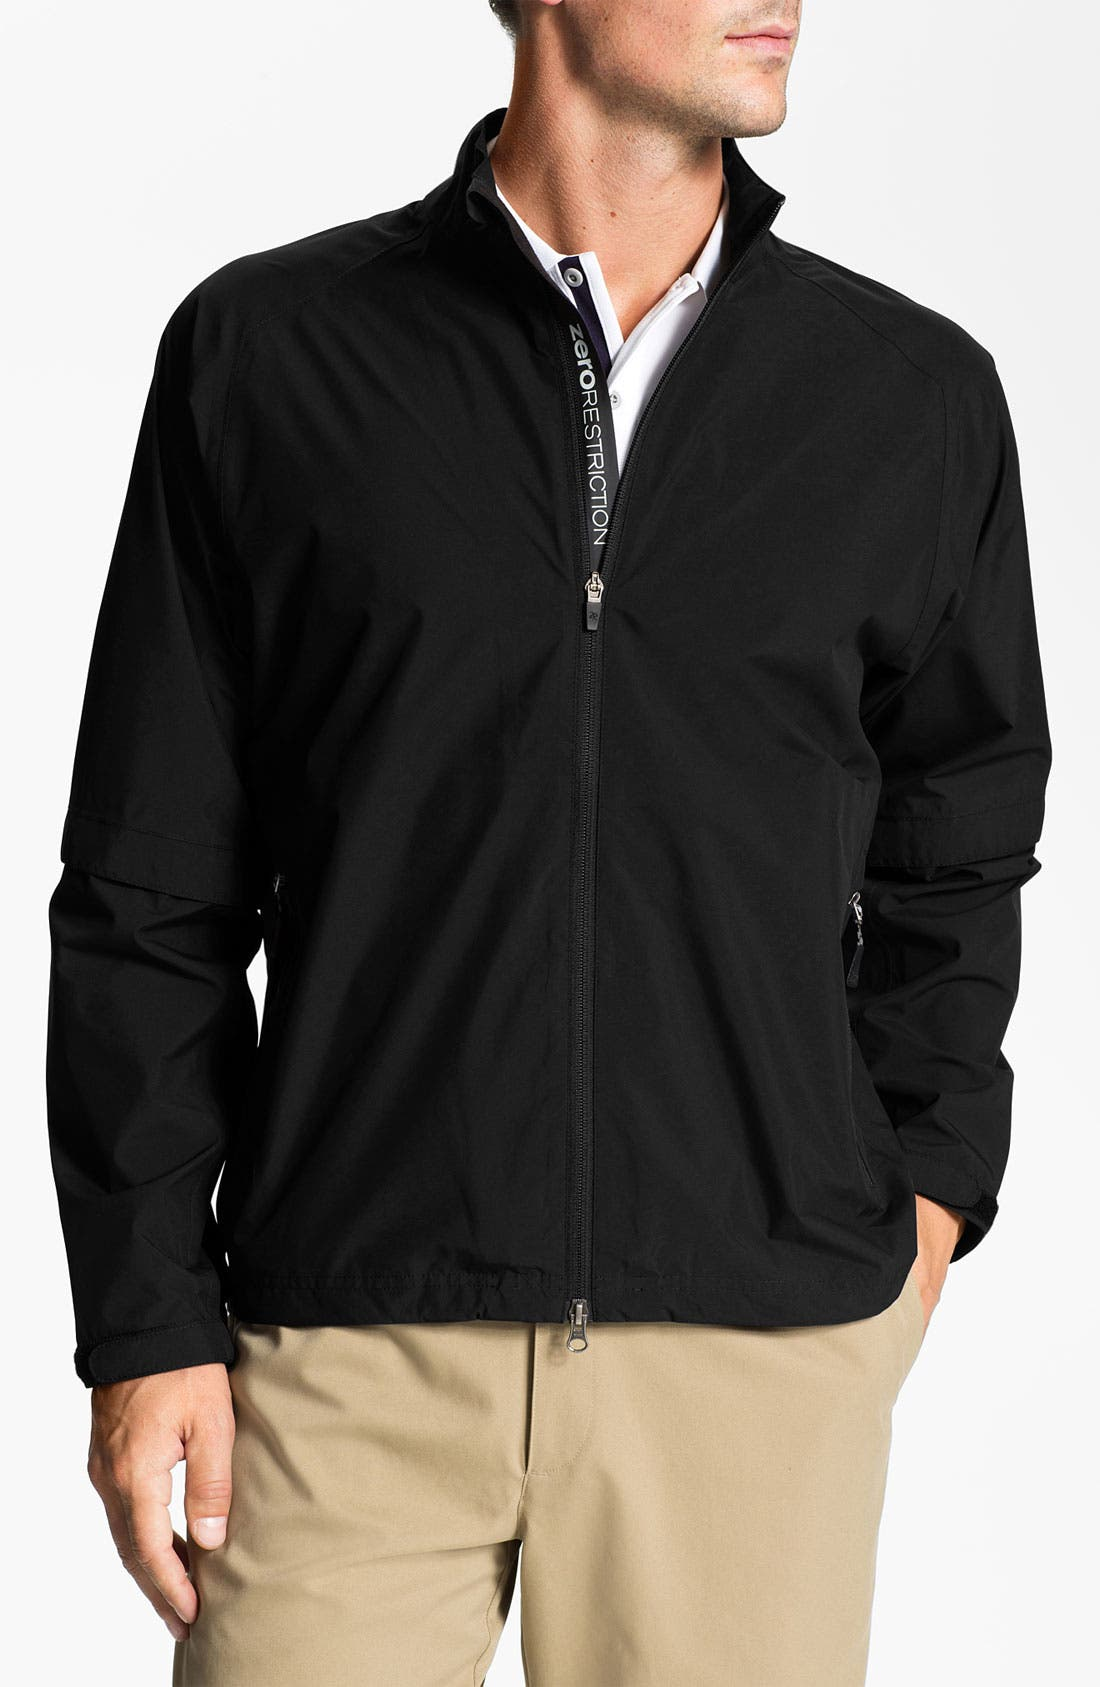 Alternate Image 1 Selected - Zero Restriction Packable Jacket